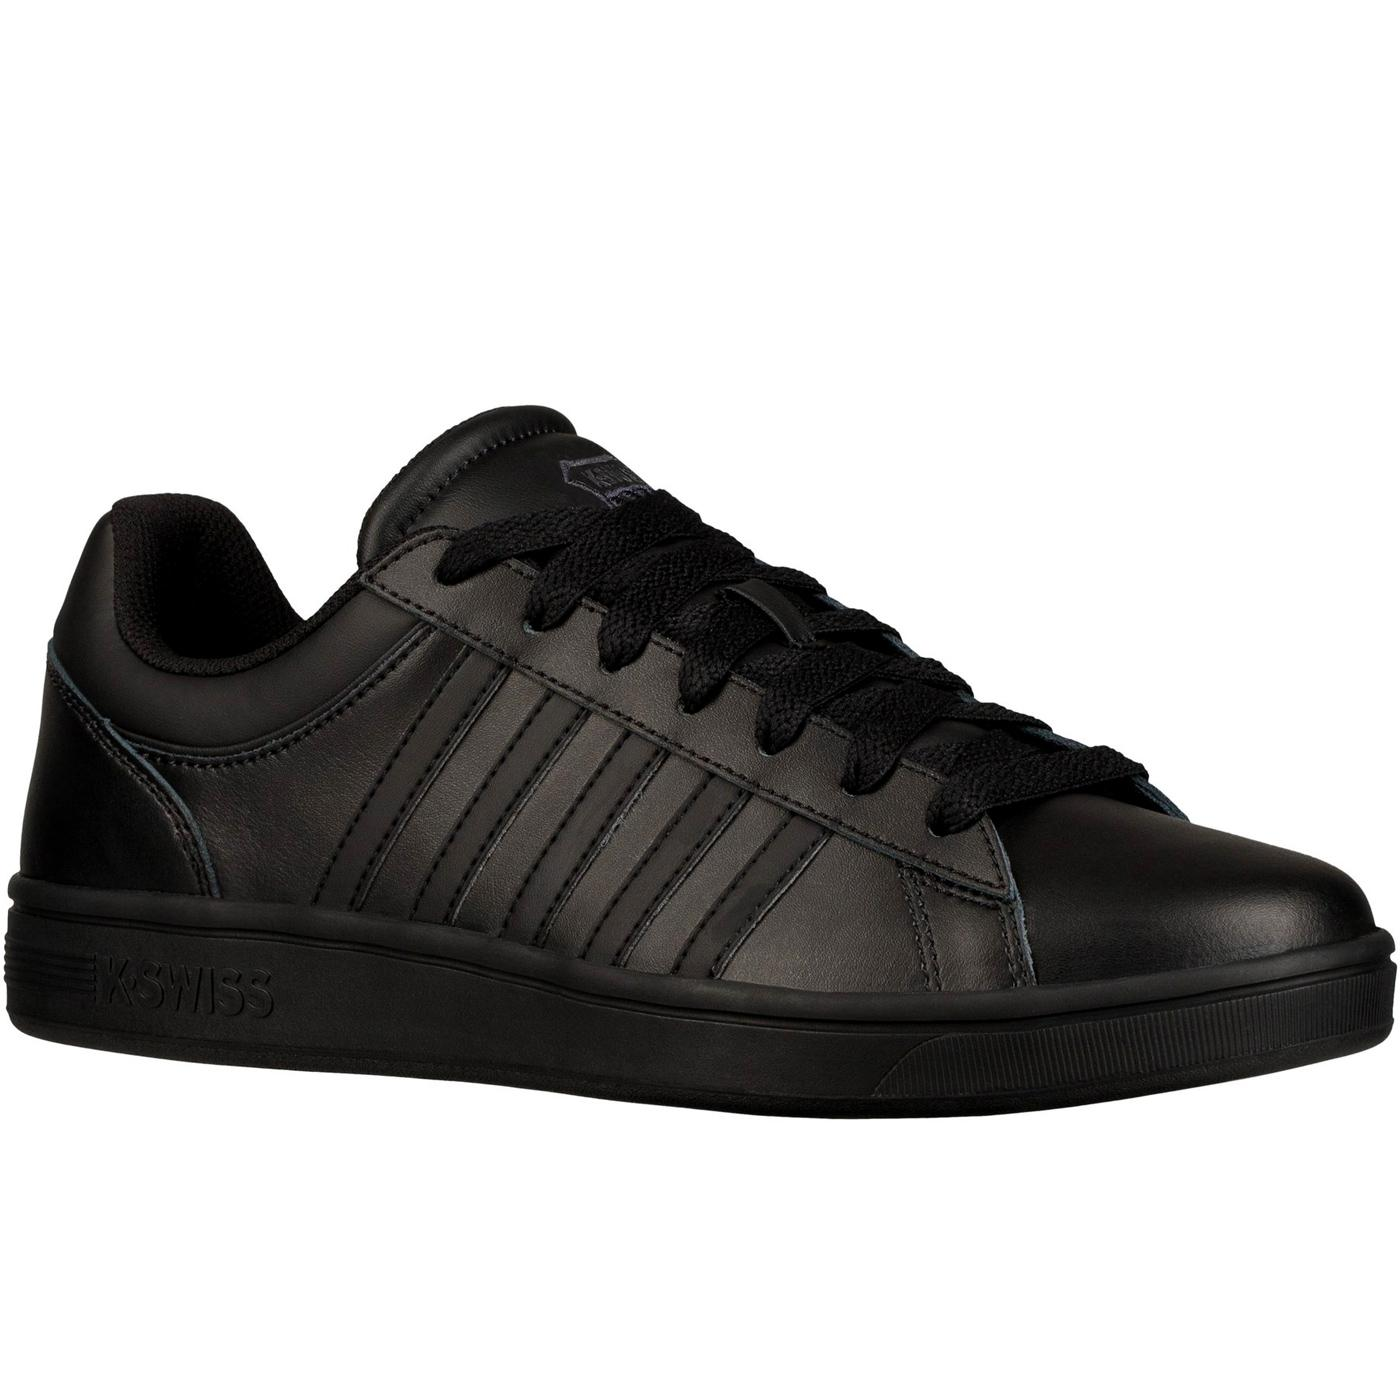 Court Winston K-SWISS Men's Retro Trainers (B/B/B)